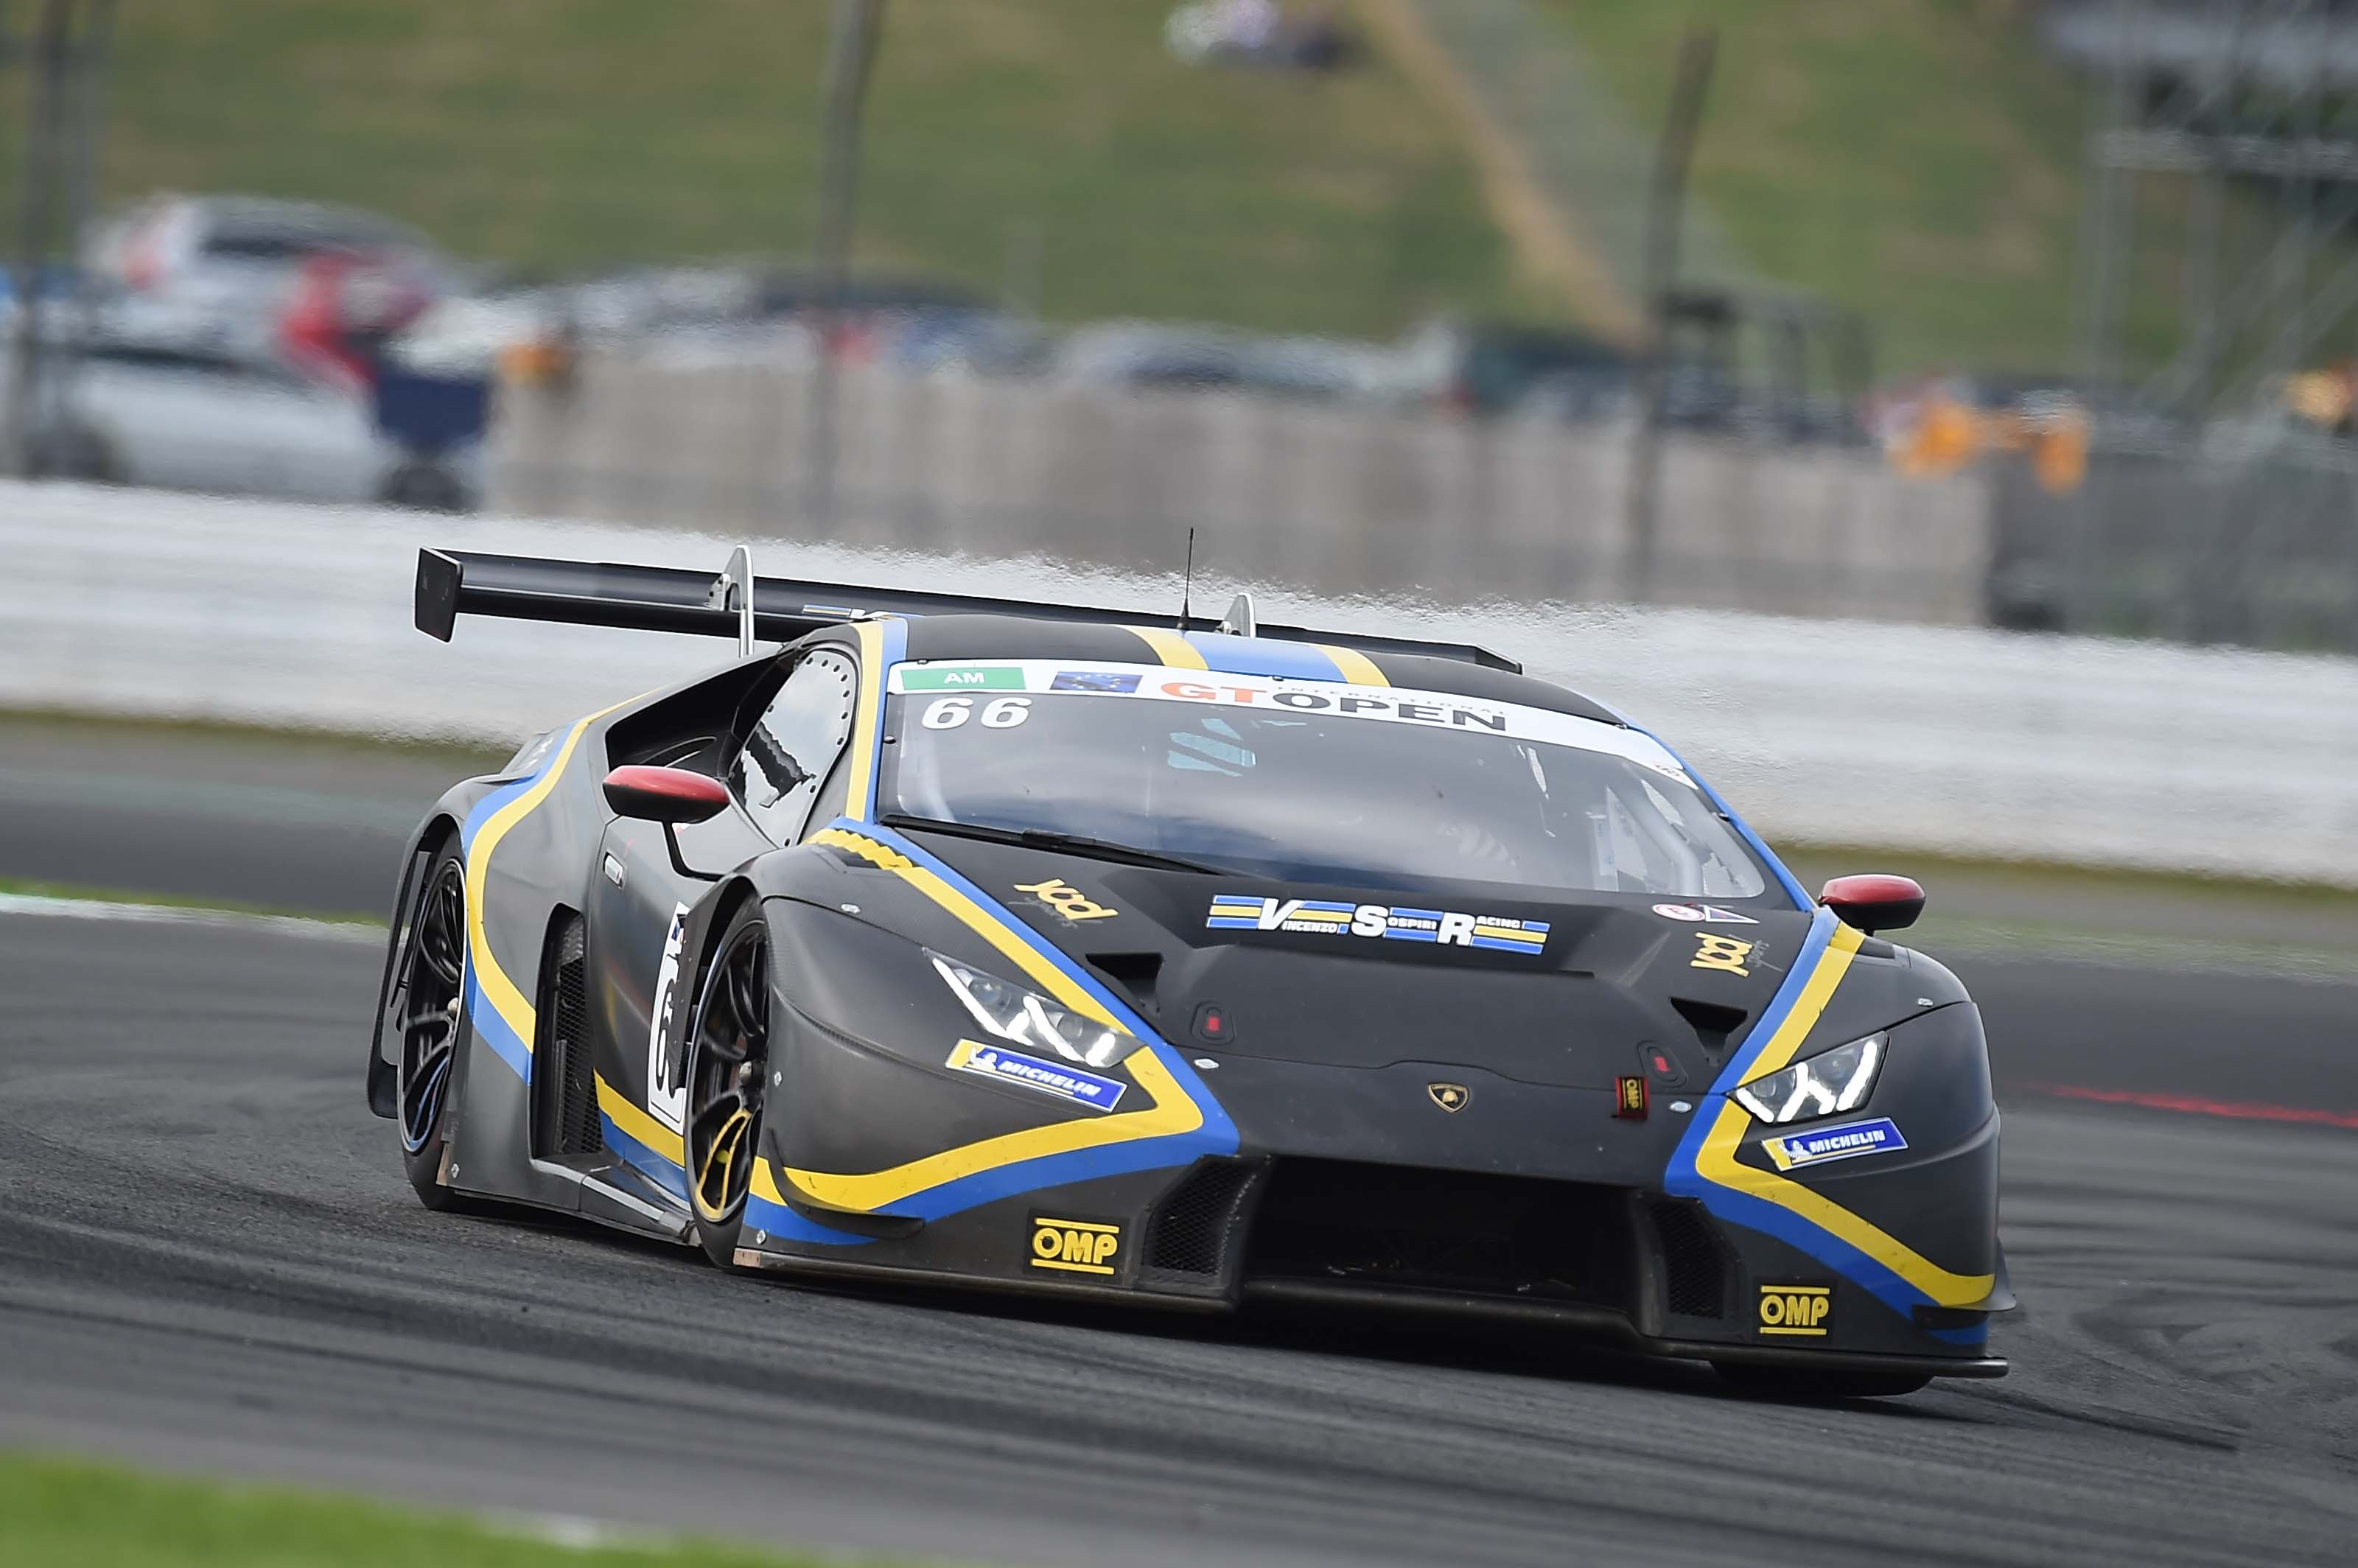 BORLENGHI AND LEWANDOWSKI UNBEATABLE AT SILVERSTONE